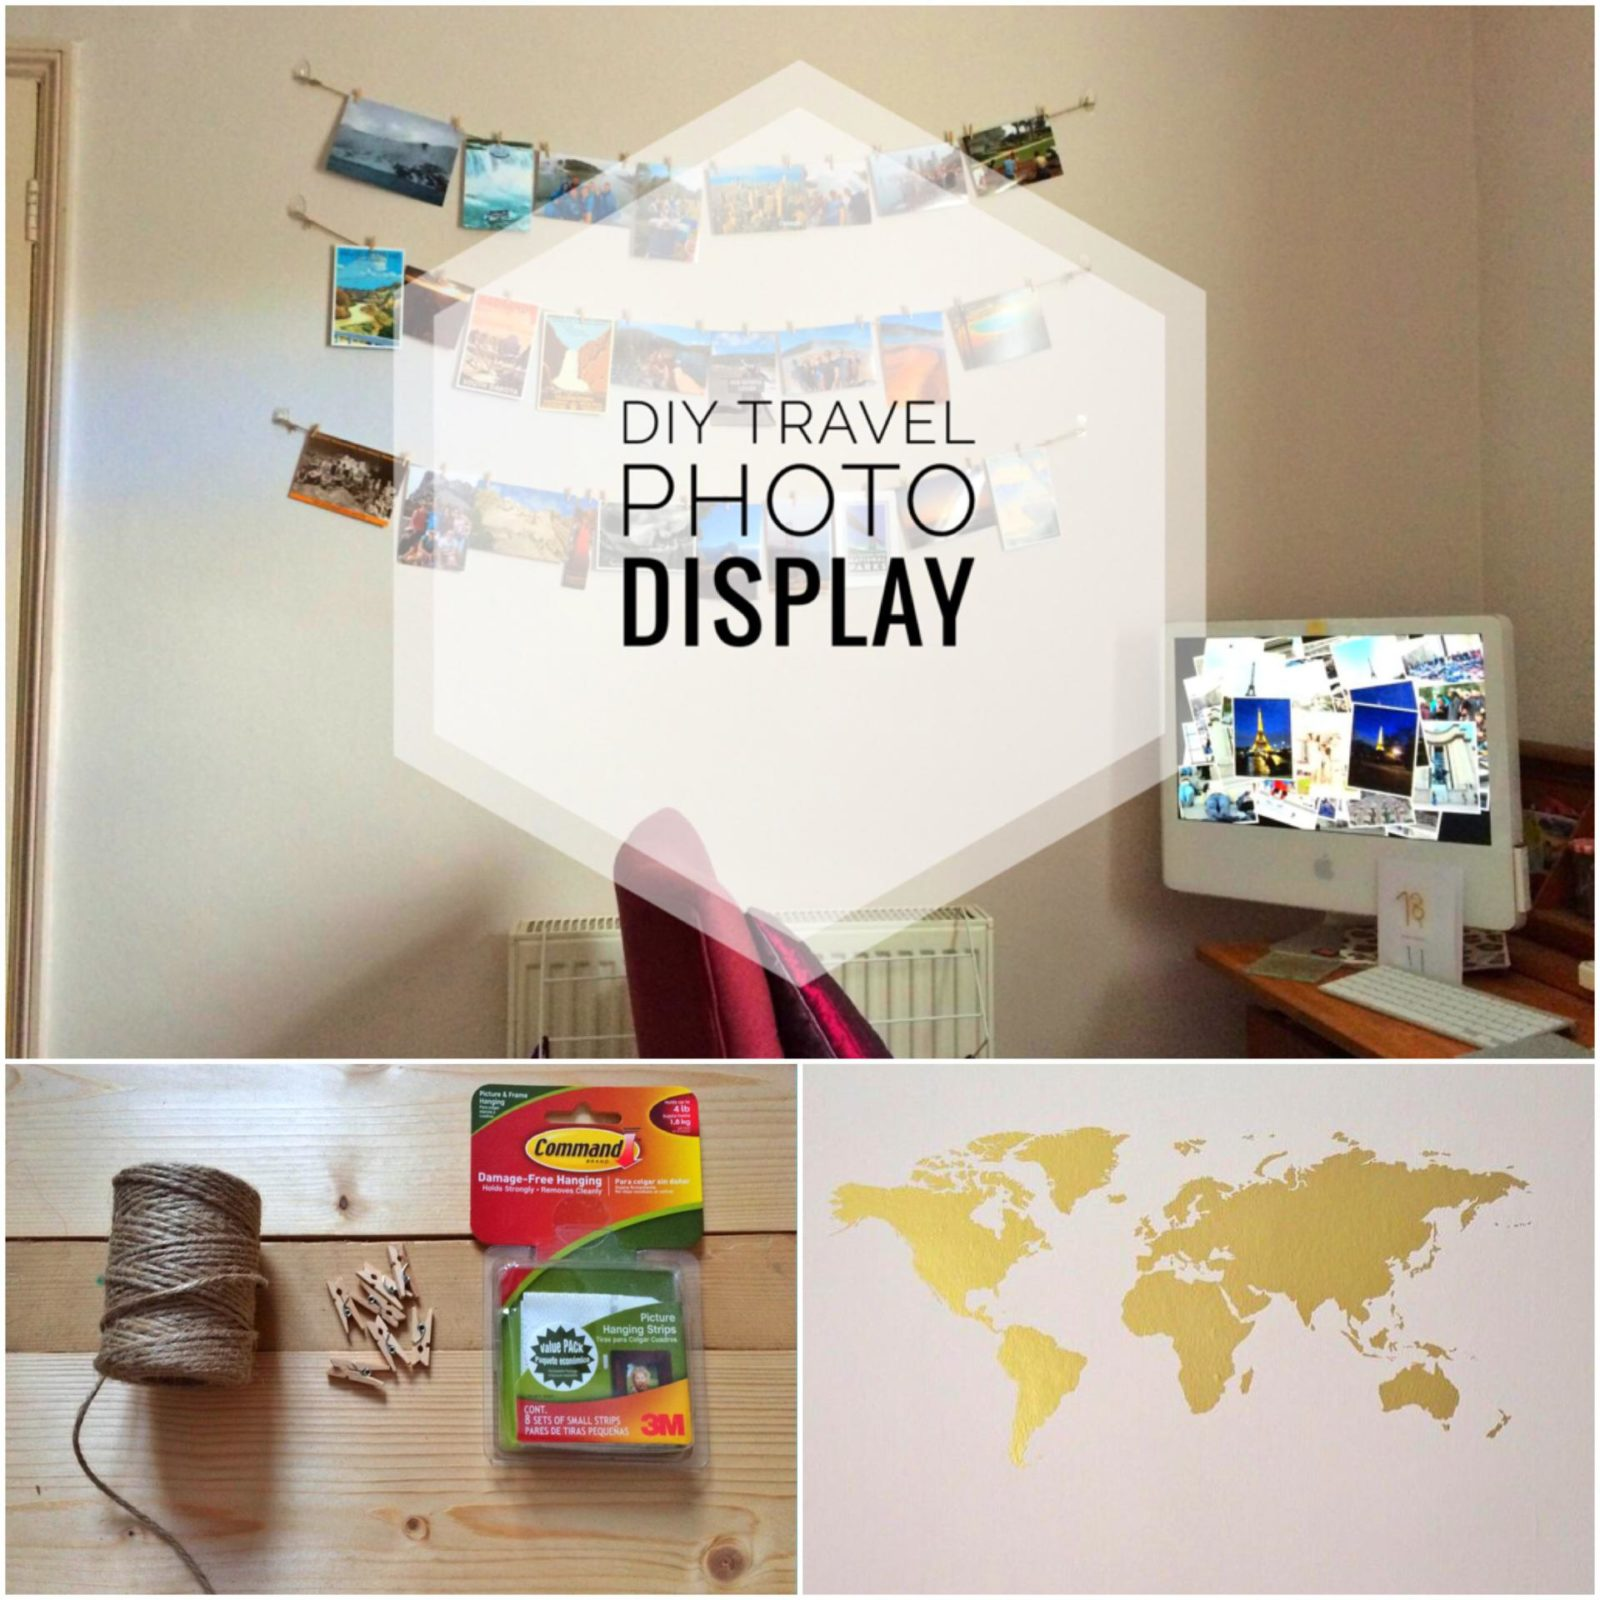 Travel Photo Display   Yesihaveablog   What to do with travel photos   DIY Photo Display   DIYWall Art Wall Sticker